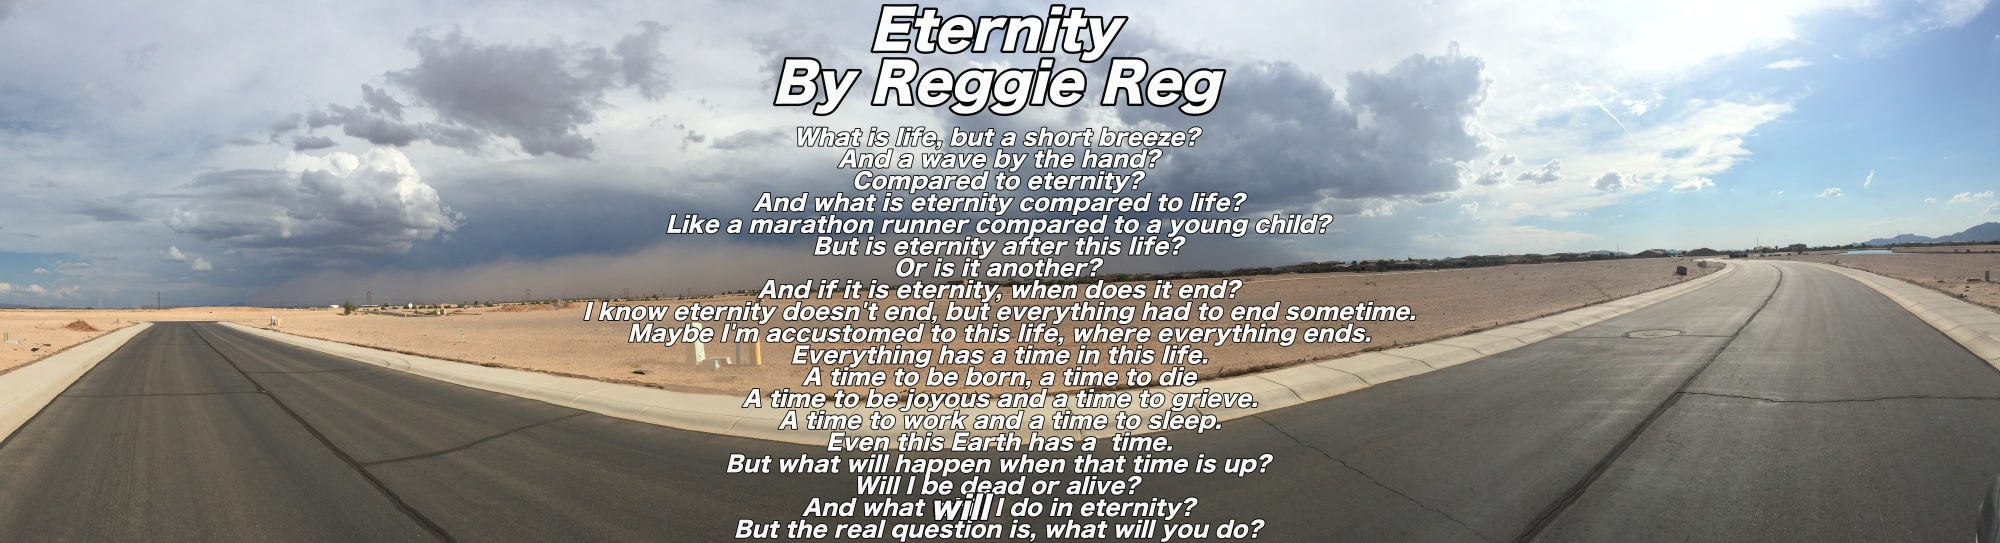 Eternity By Reggie_IMG_4725